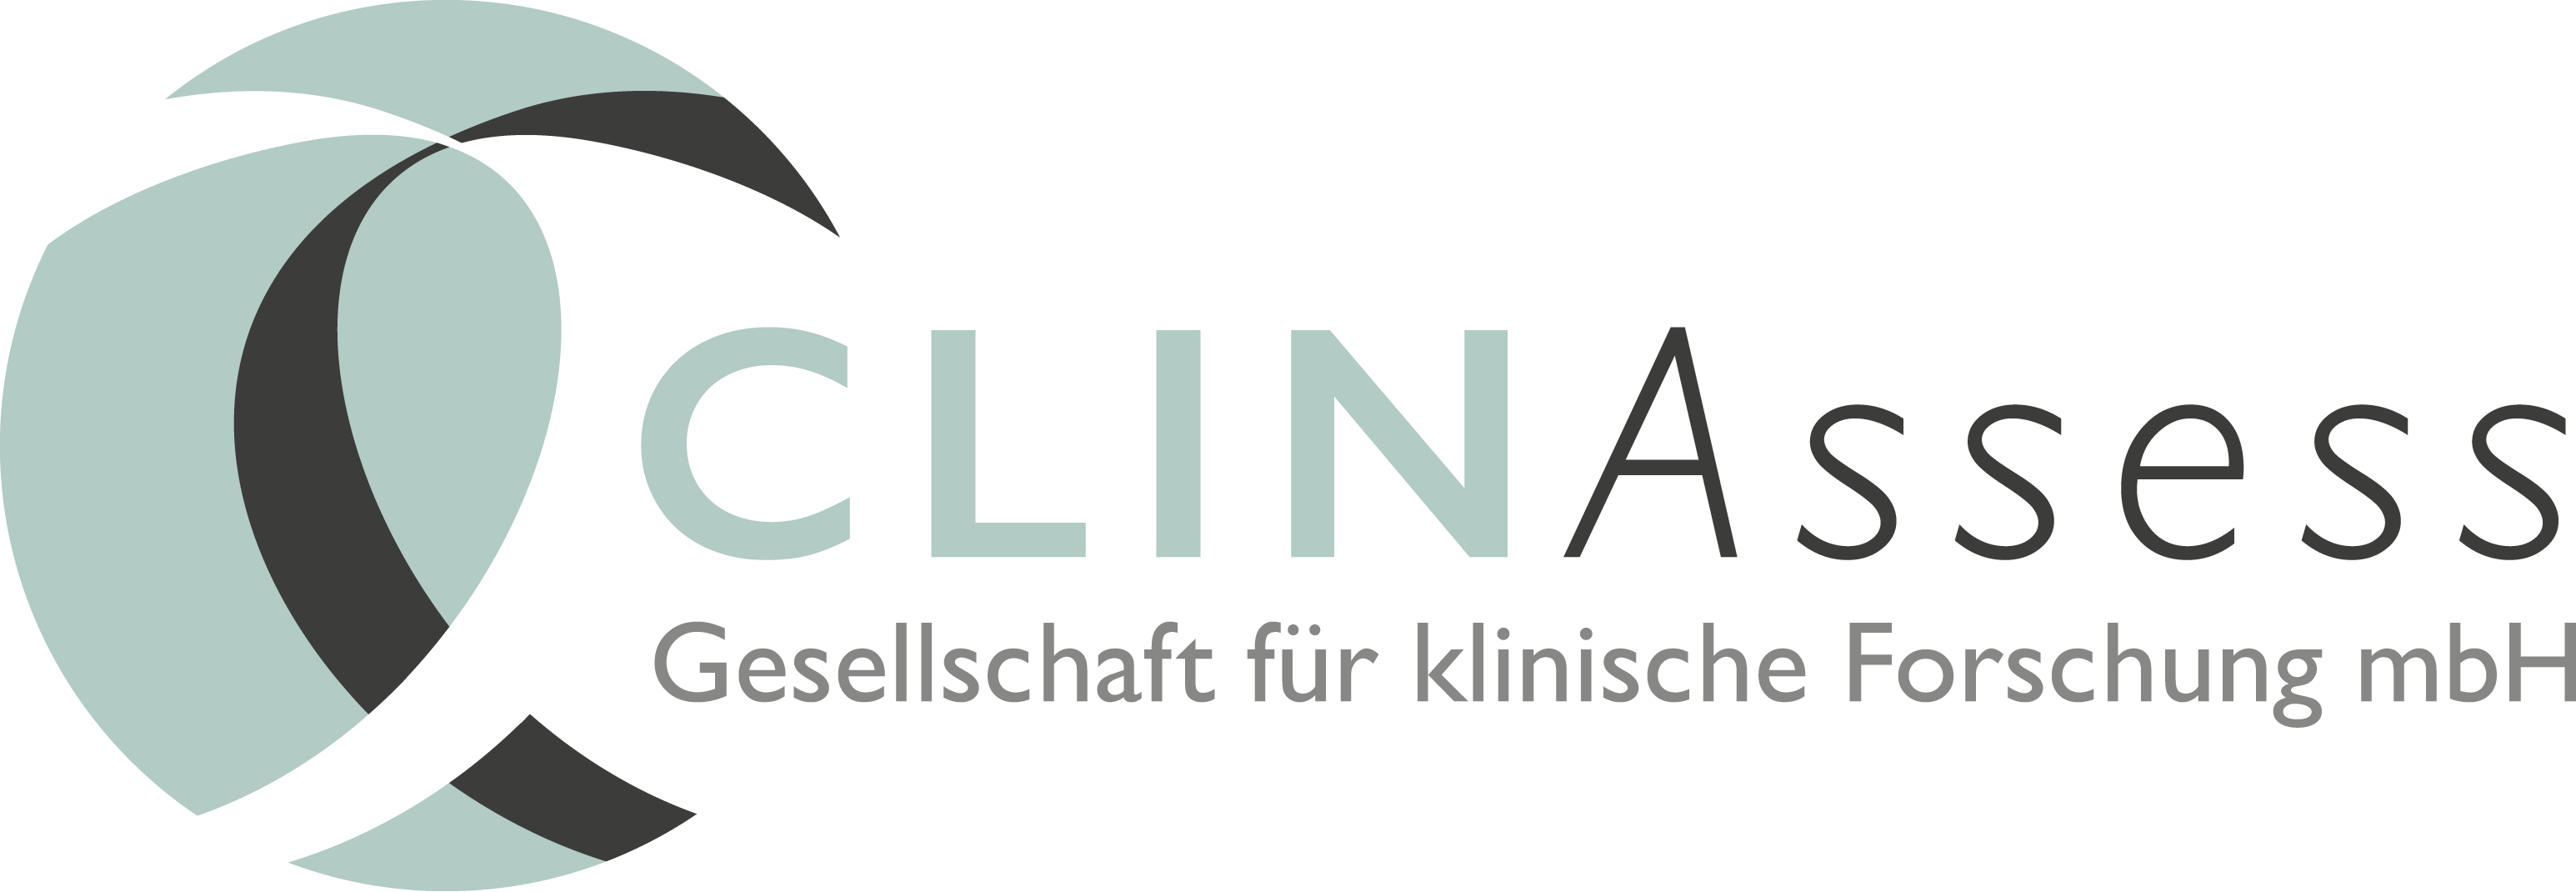 ClinAssess GmbH